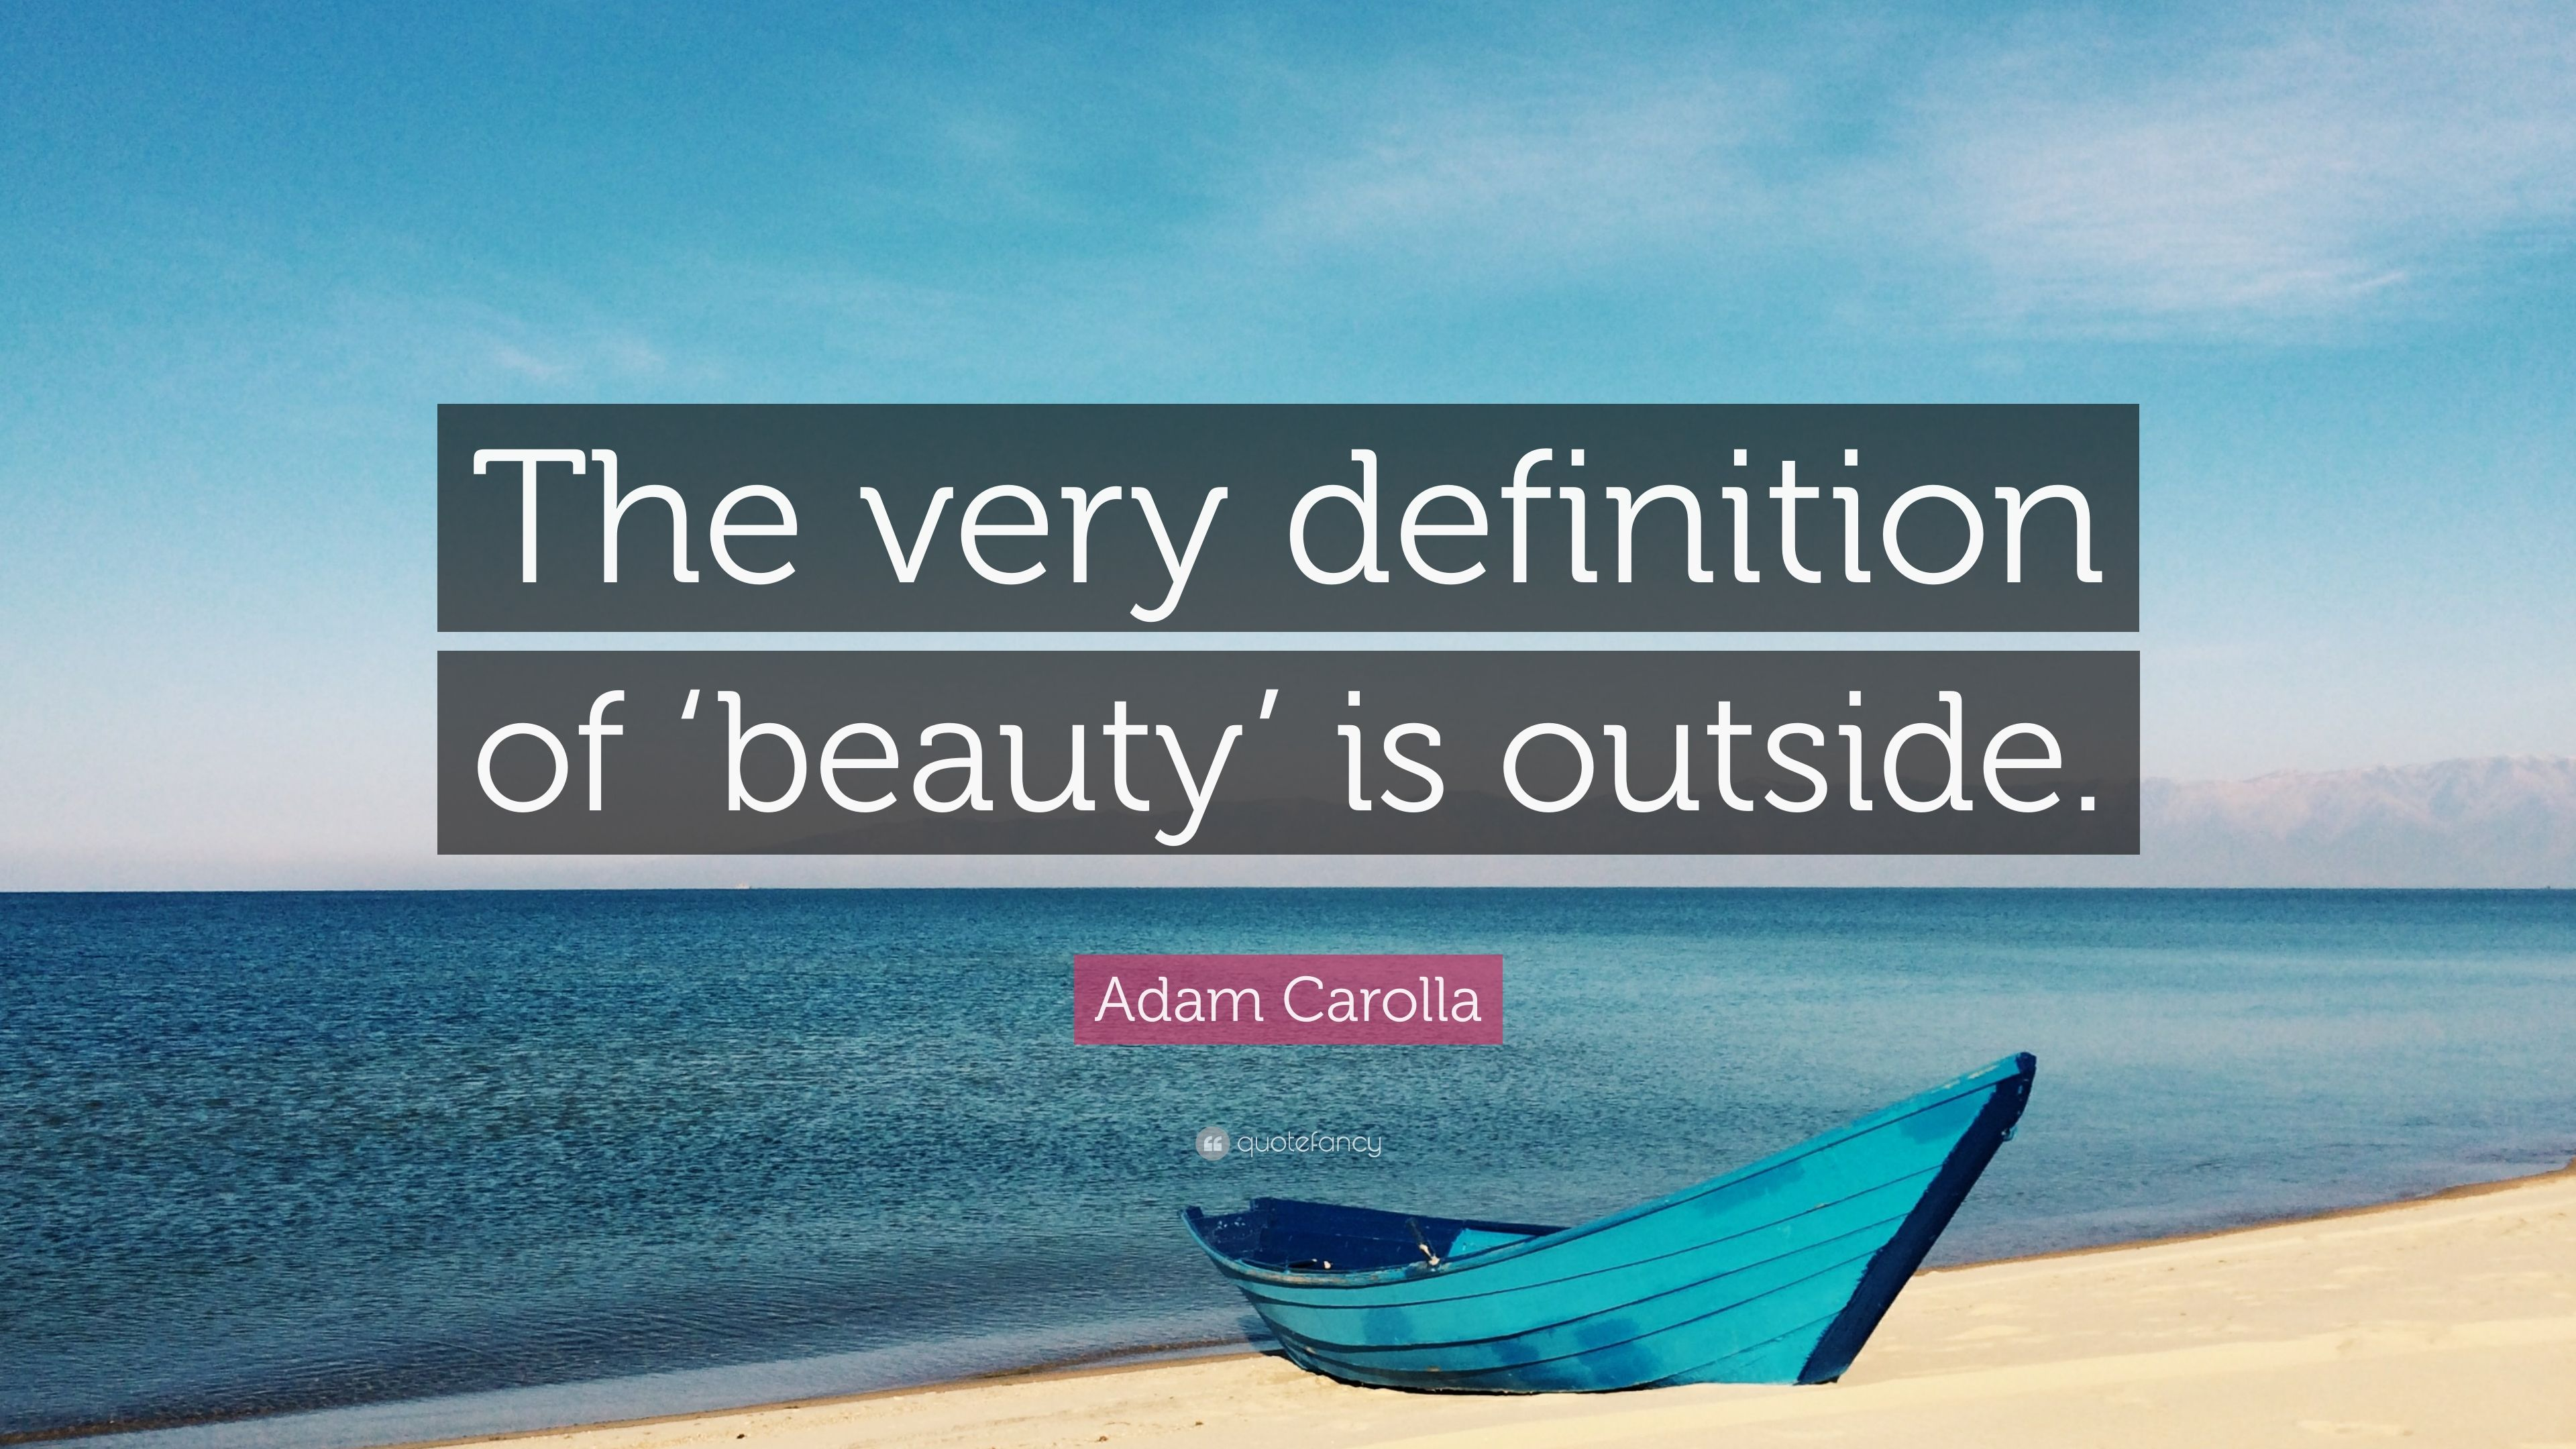 a study of the definition of beauty Beauty industry analysis 2018 and our definition of beauty is malleable and ever changing - providing never ending opportunities for the industry to innovate.